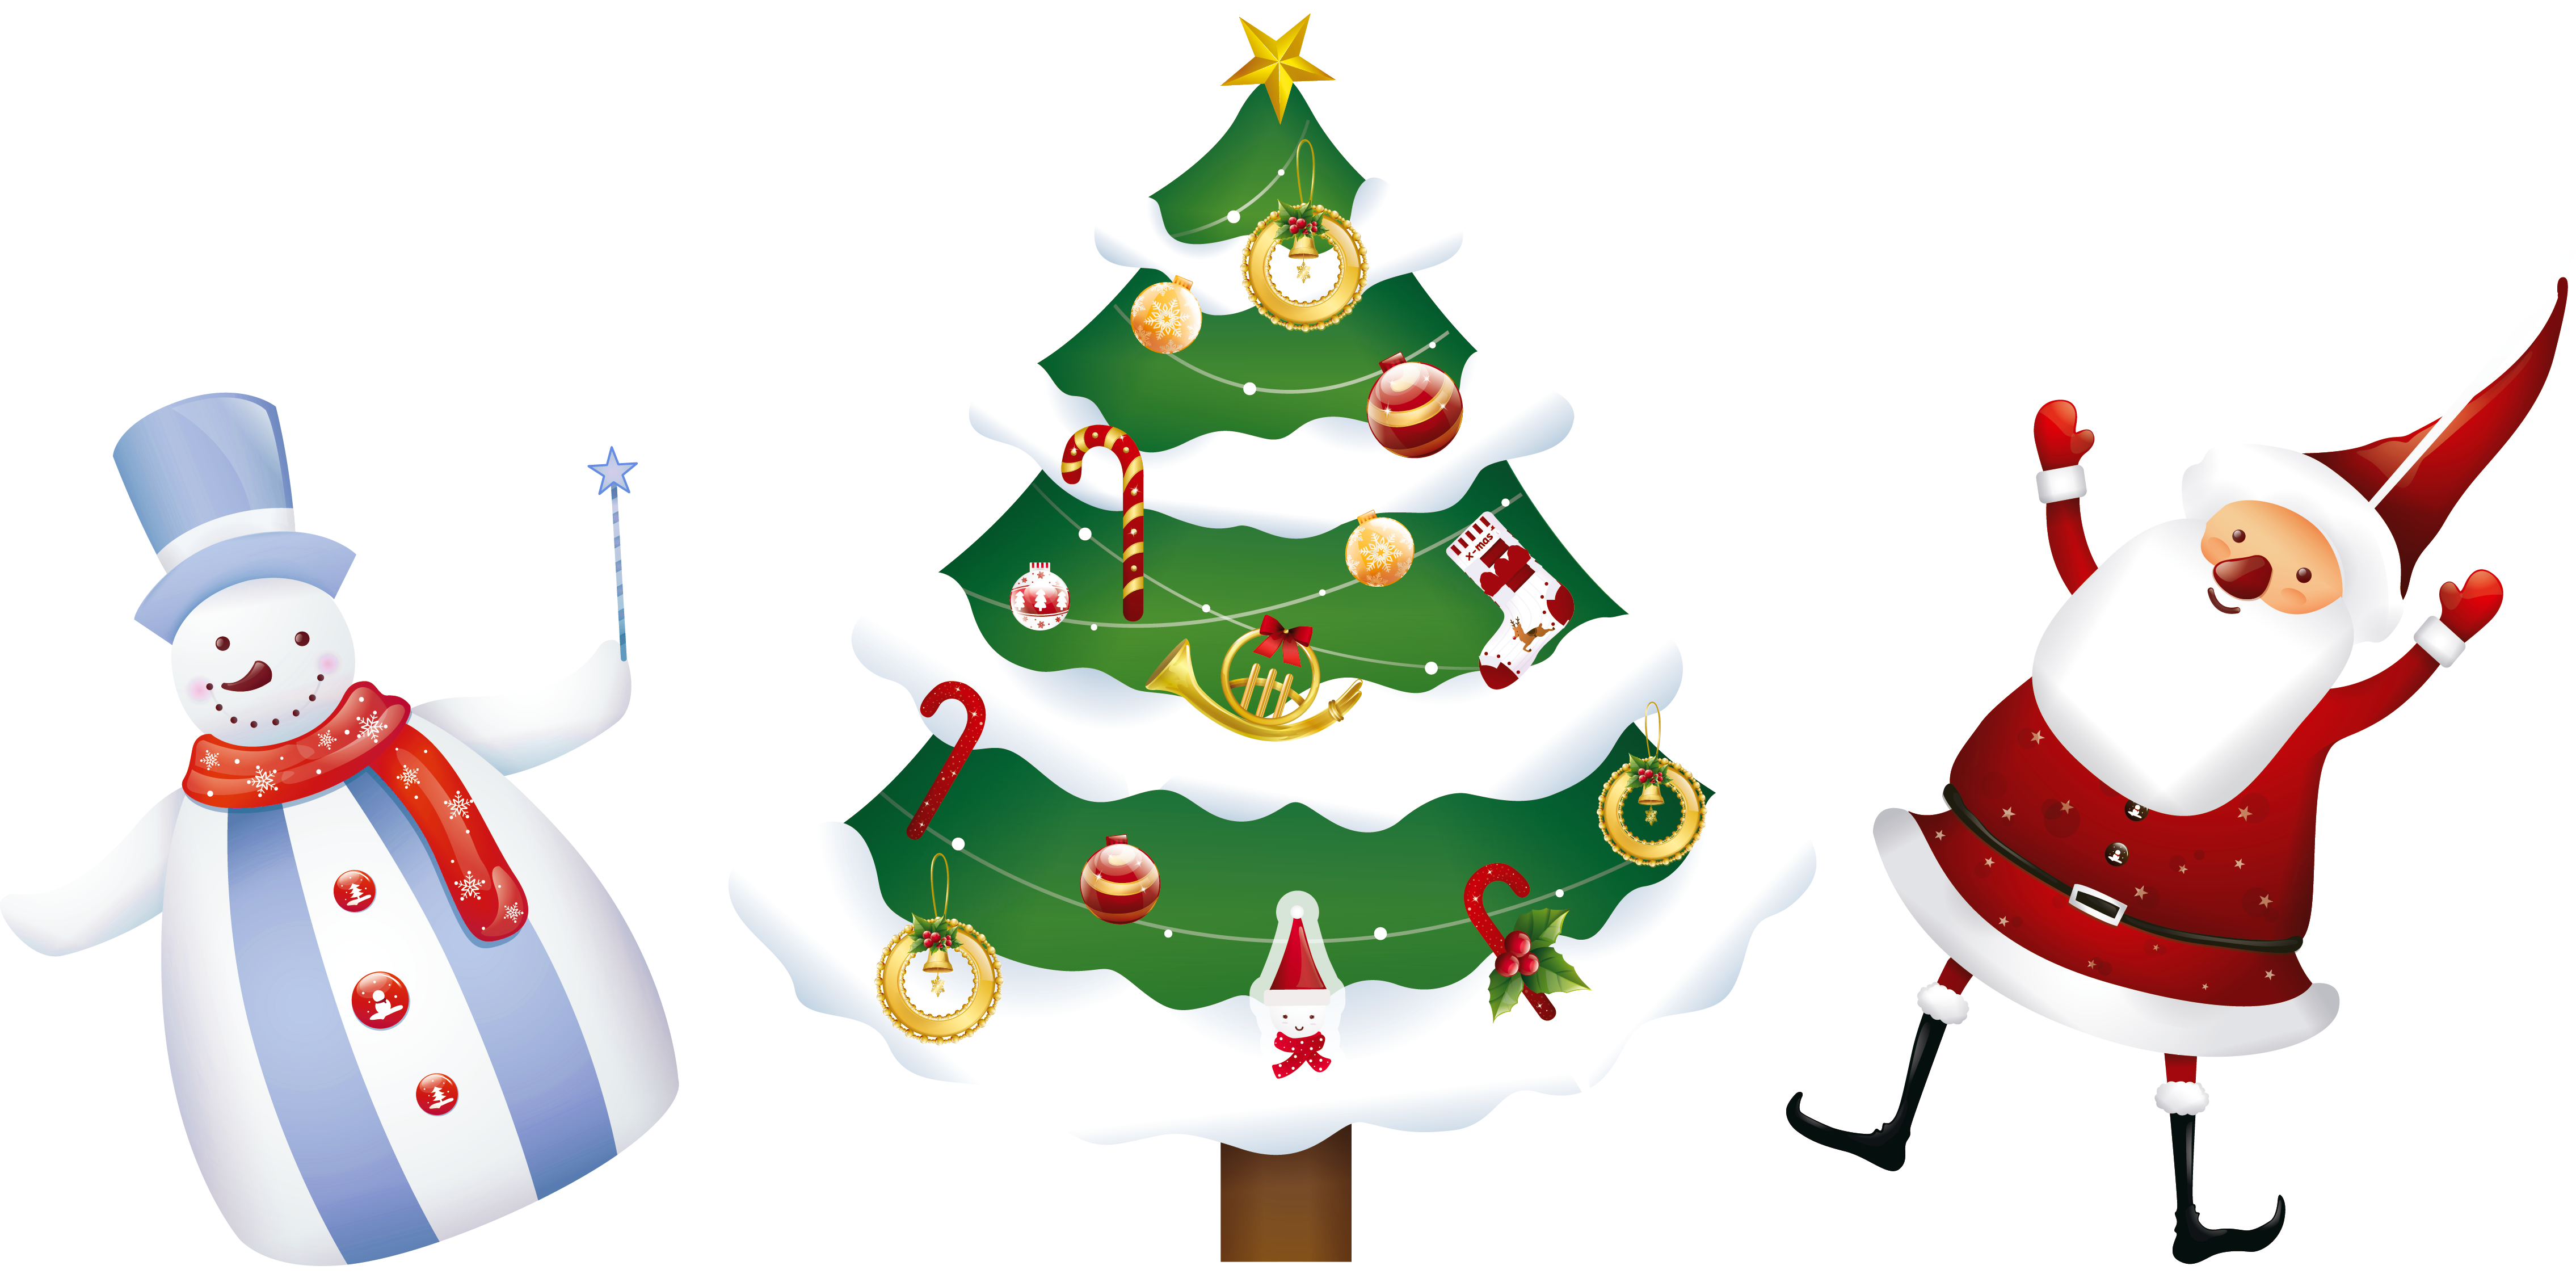 Christmas beach clipart graphic 28+ Collection of Beach Snowman Clipart | High quality, free ... graphic